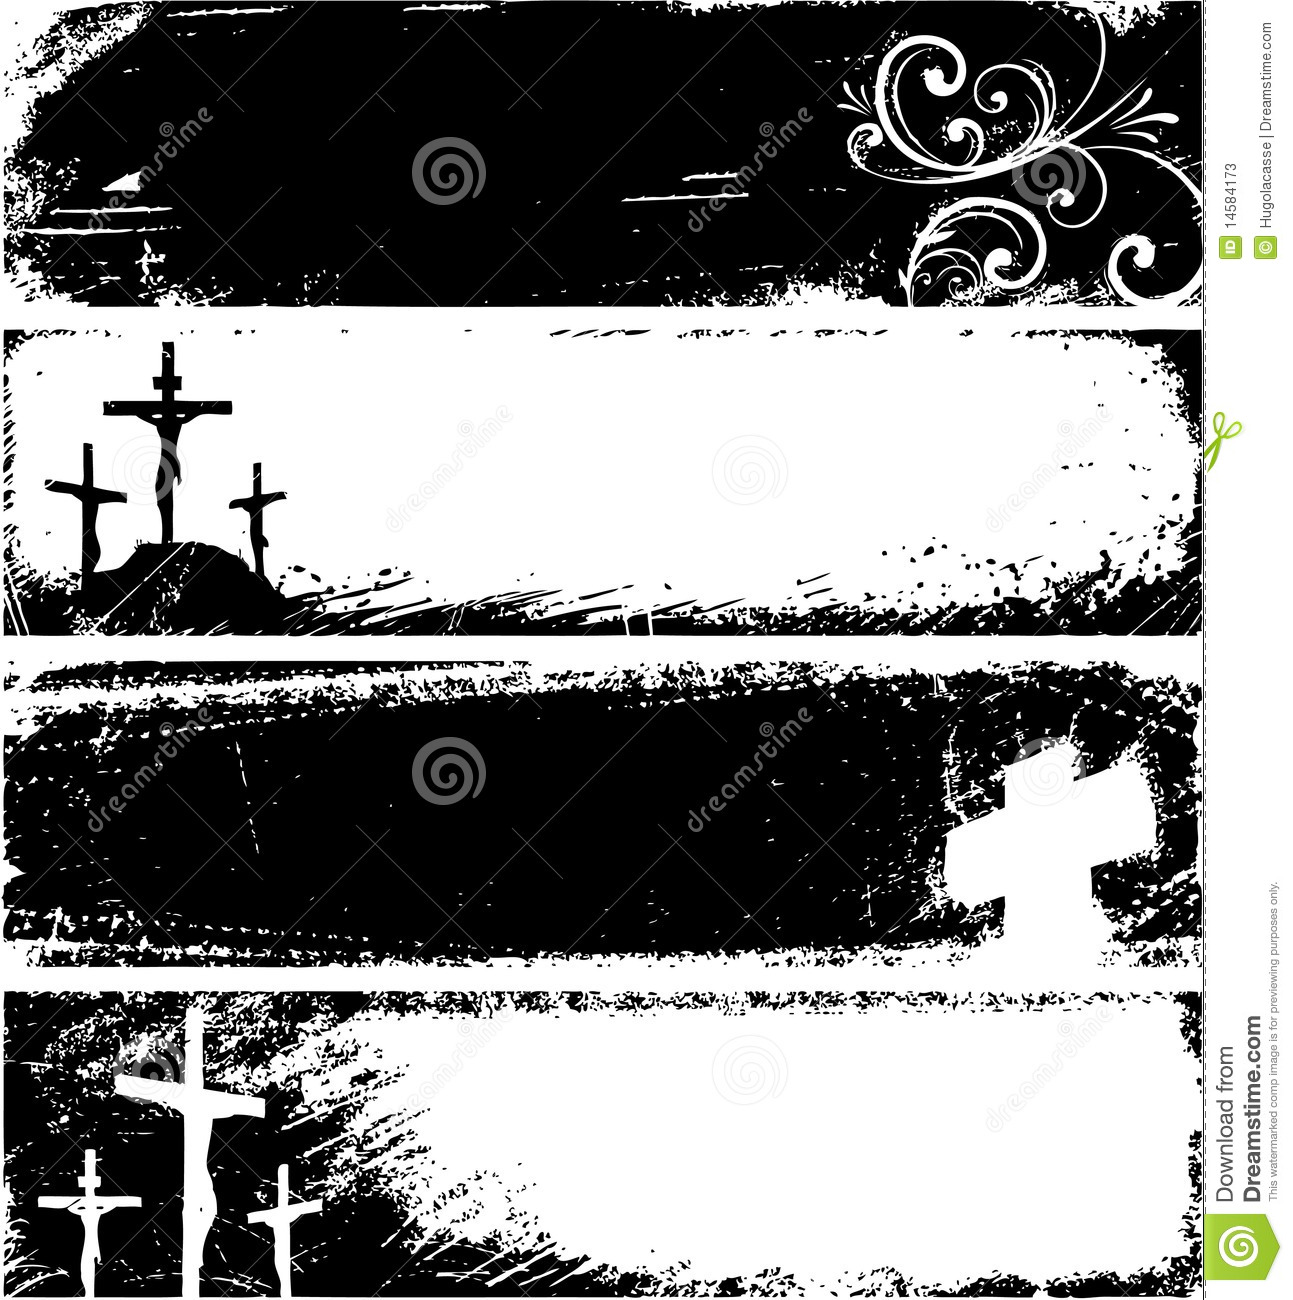 Grunge christian frames stock vector. Illustration of aged - 14584173